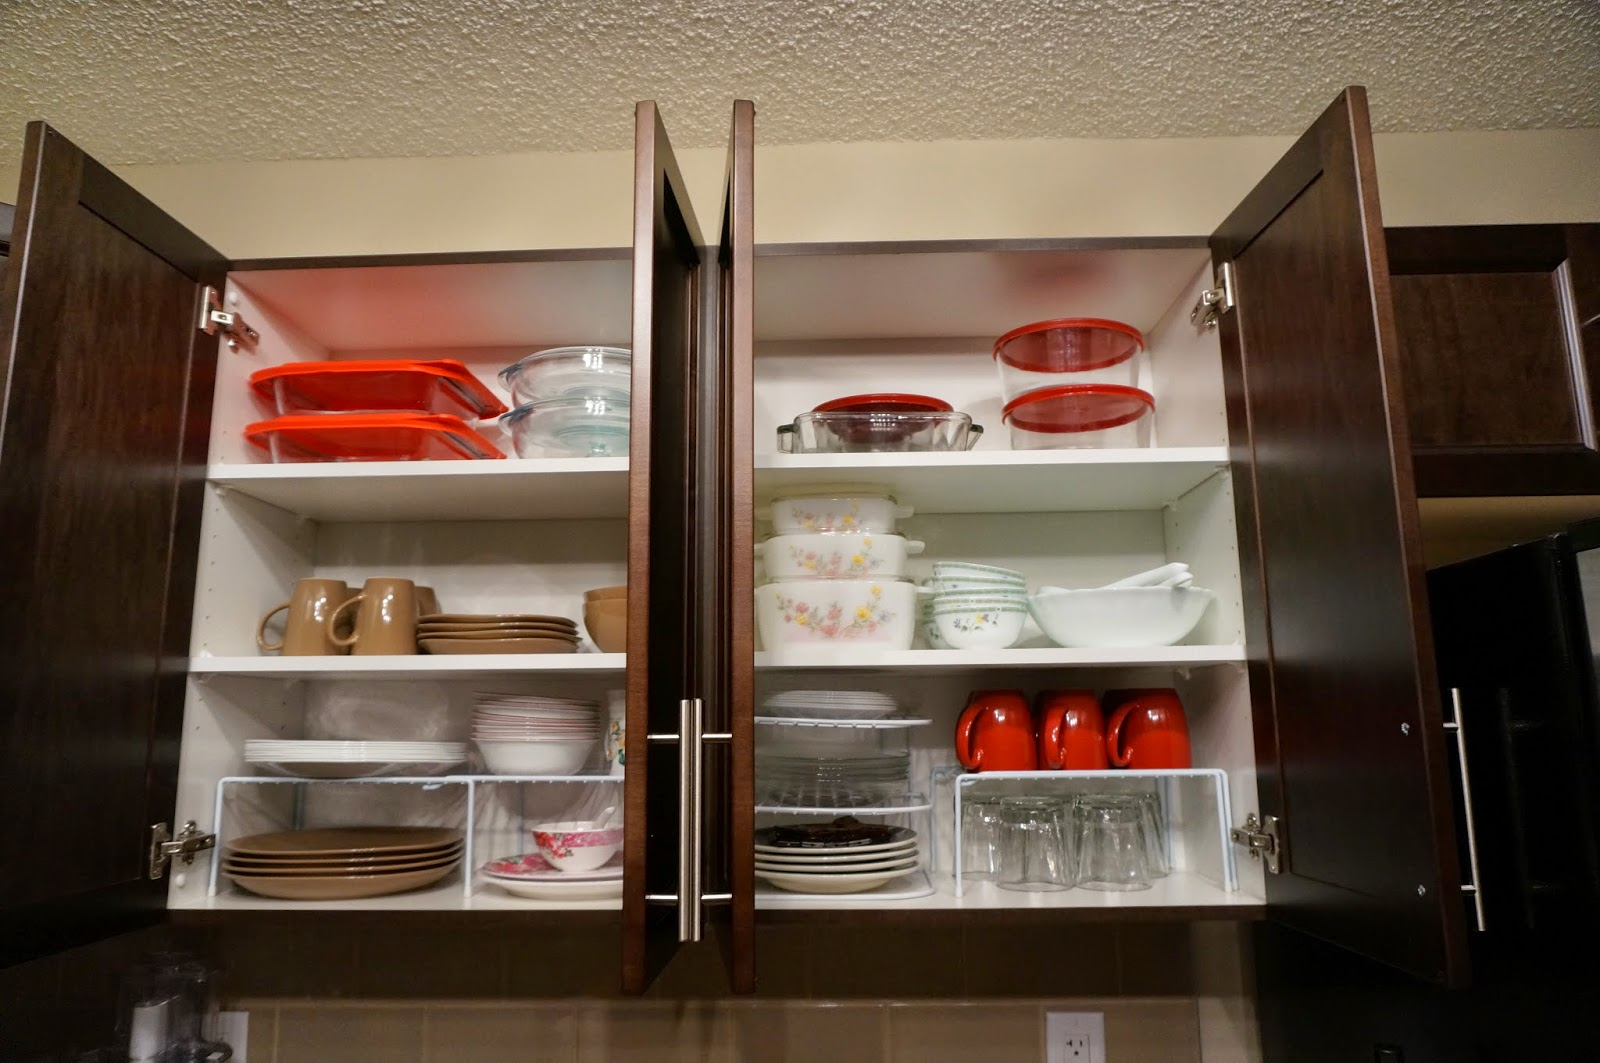 We love cozy homes how to organize kitchen cabinet shelves for Kitchen cabinet shelves